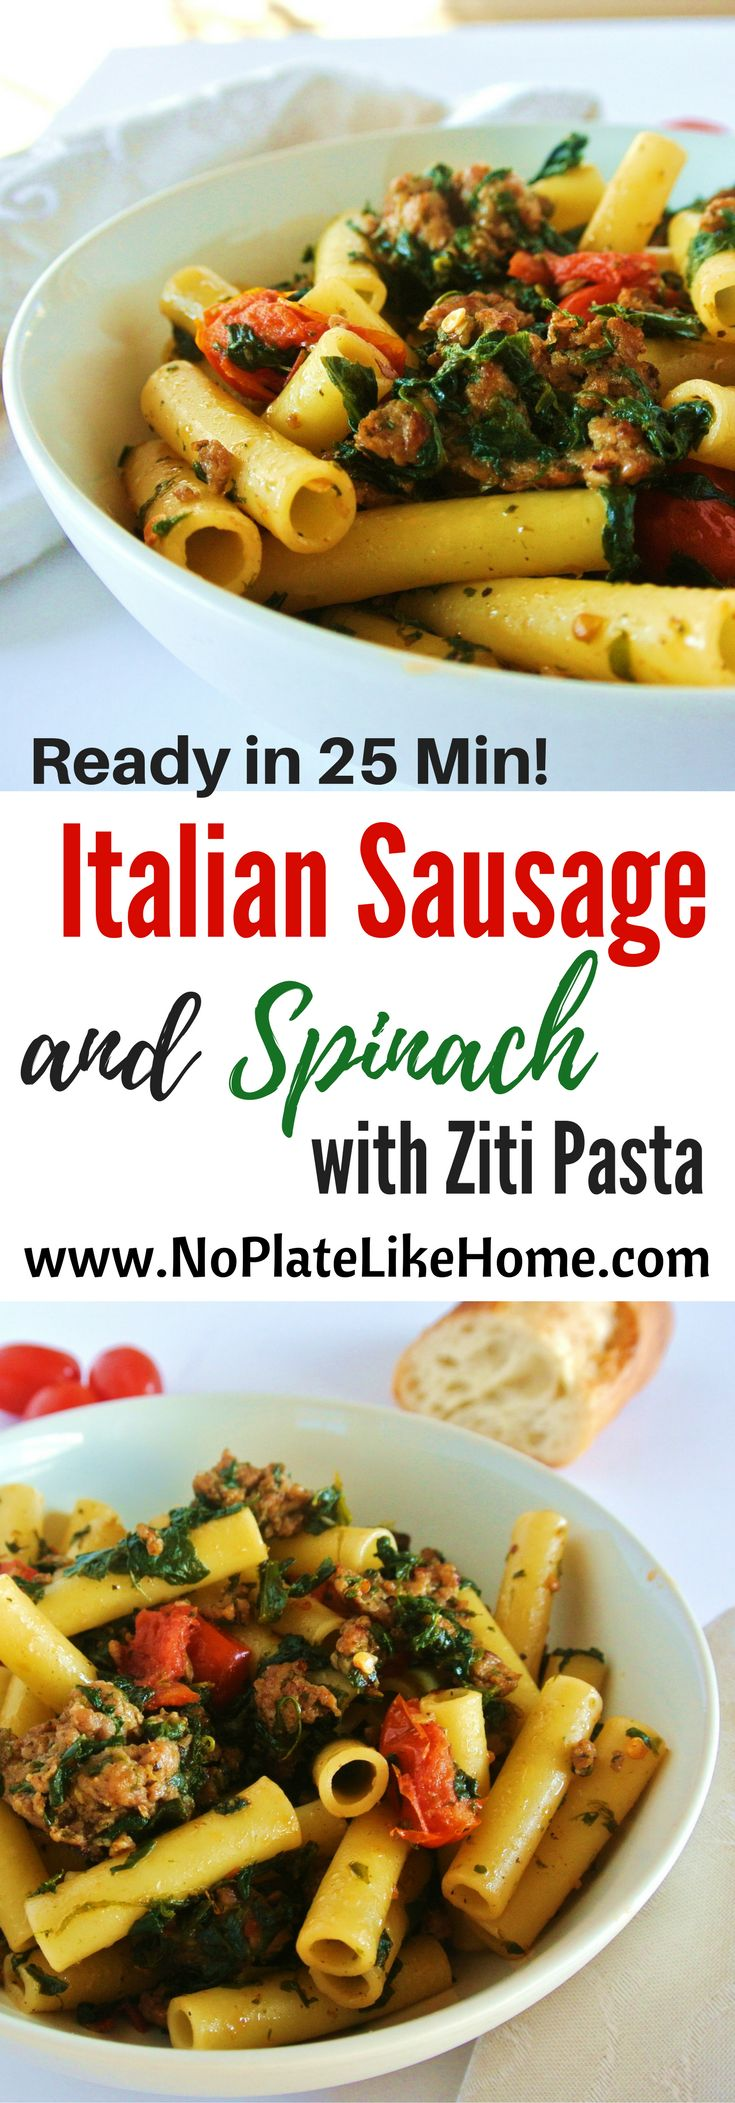 Ziti pasta mixed with ground Italian Sausage, Spinach, Grape tomatoes and Parmesan cheese is a great weeknight meal. Ready in only 25 min, your family will love this quick and tasty dinner! Pin for later.